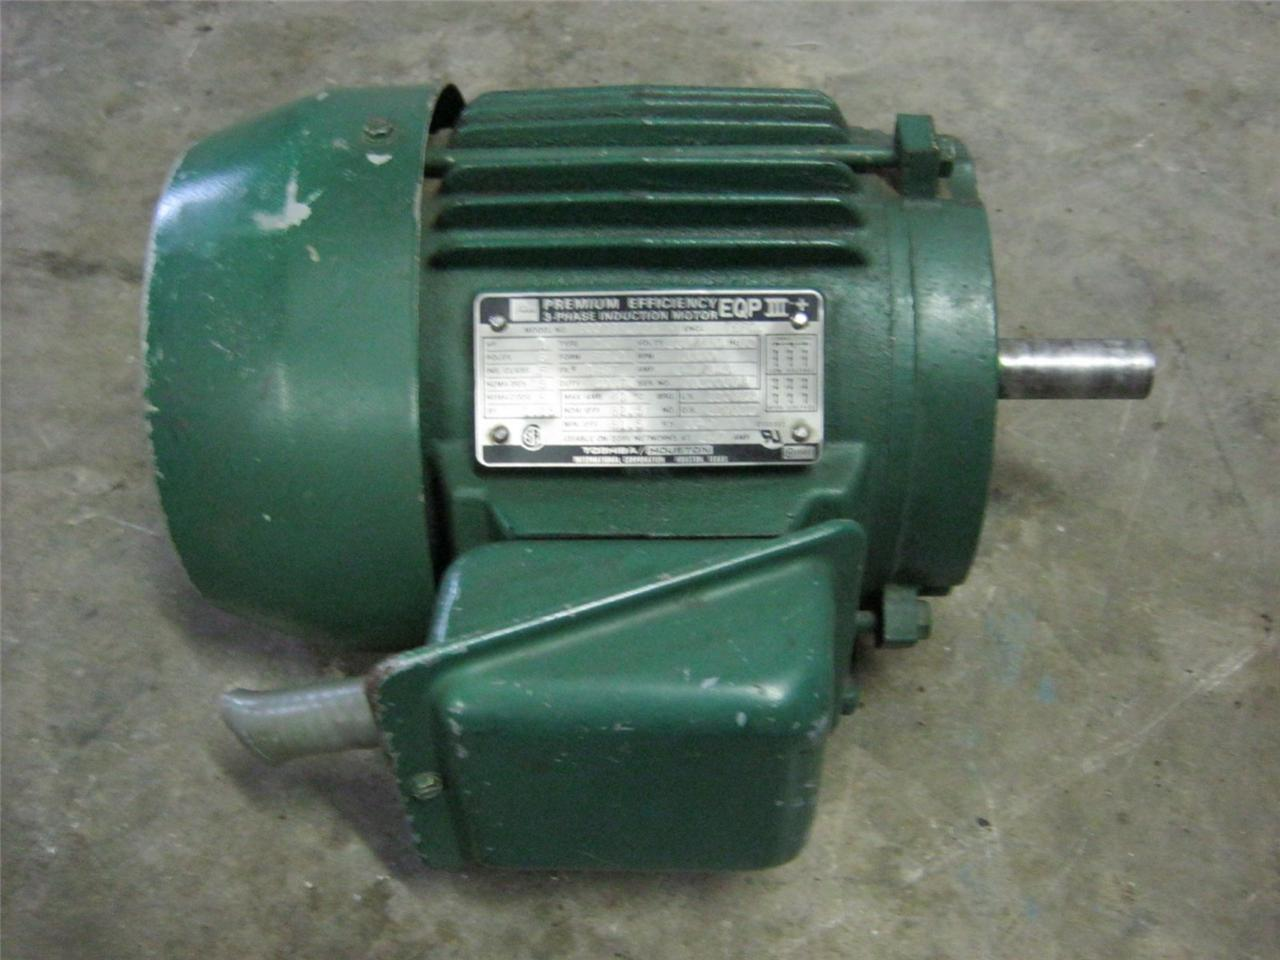 Toshiba peremium efficiency 3 phase induction motor eqp3 1 for Three phase induction motor